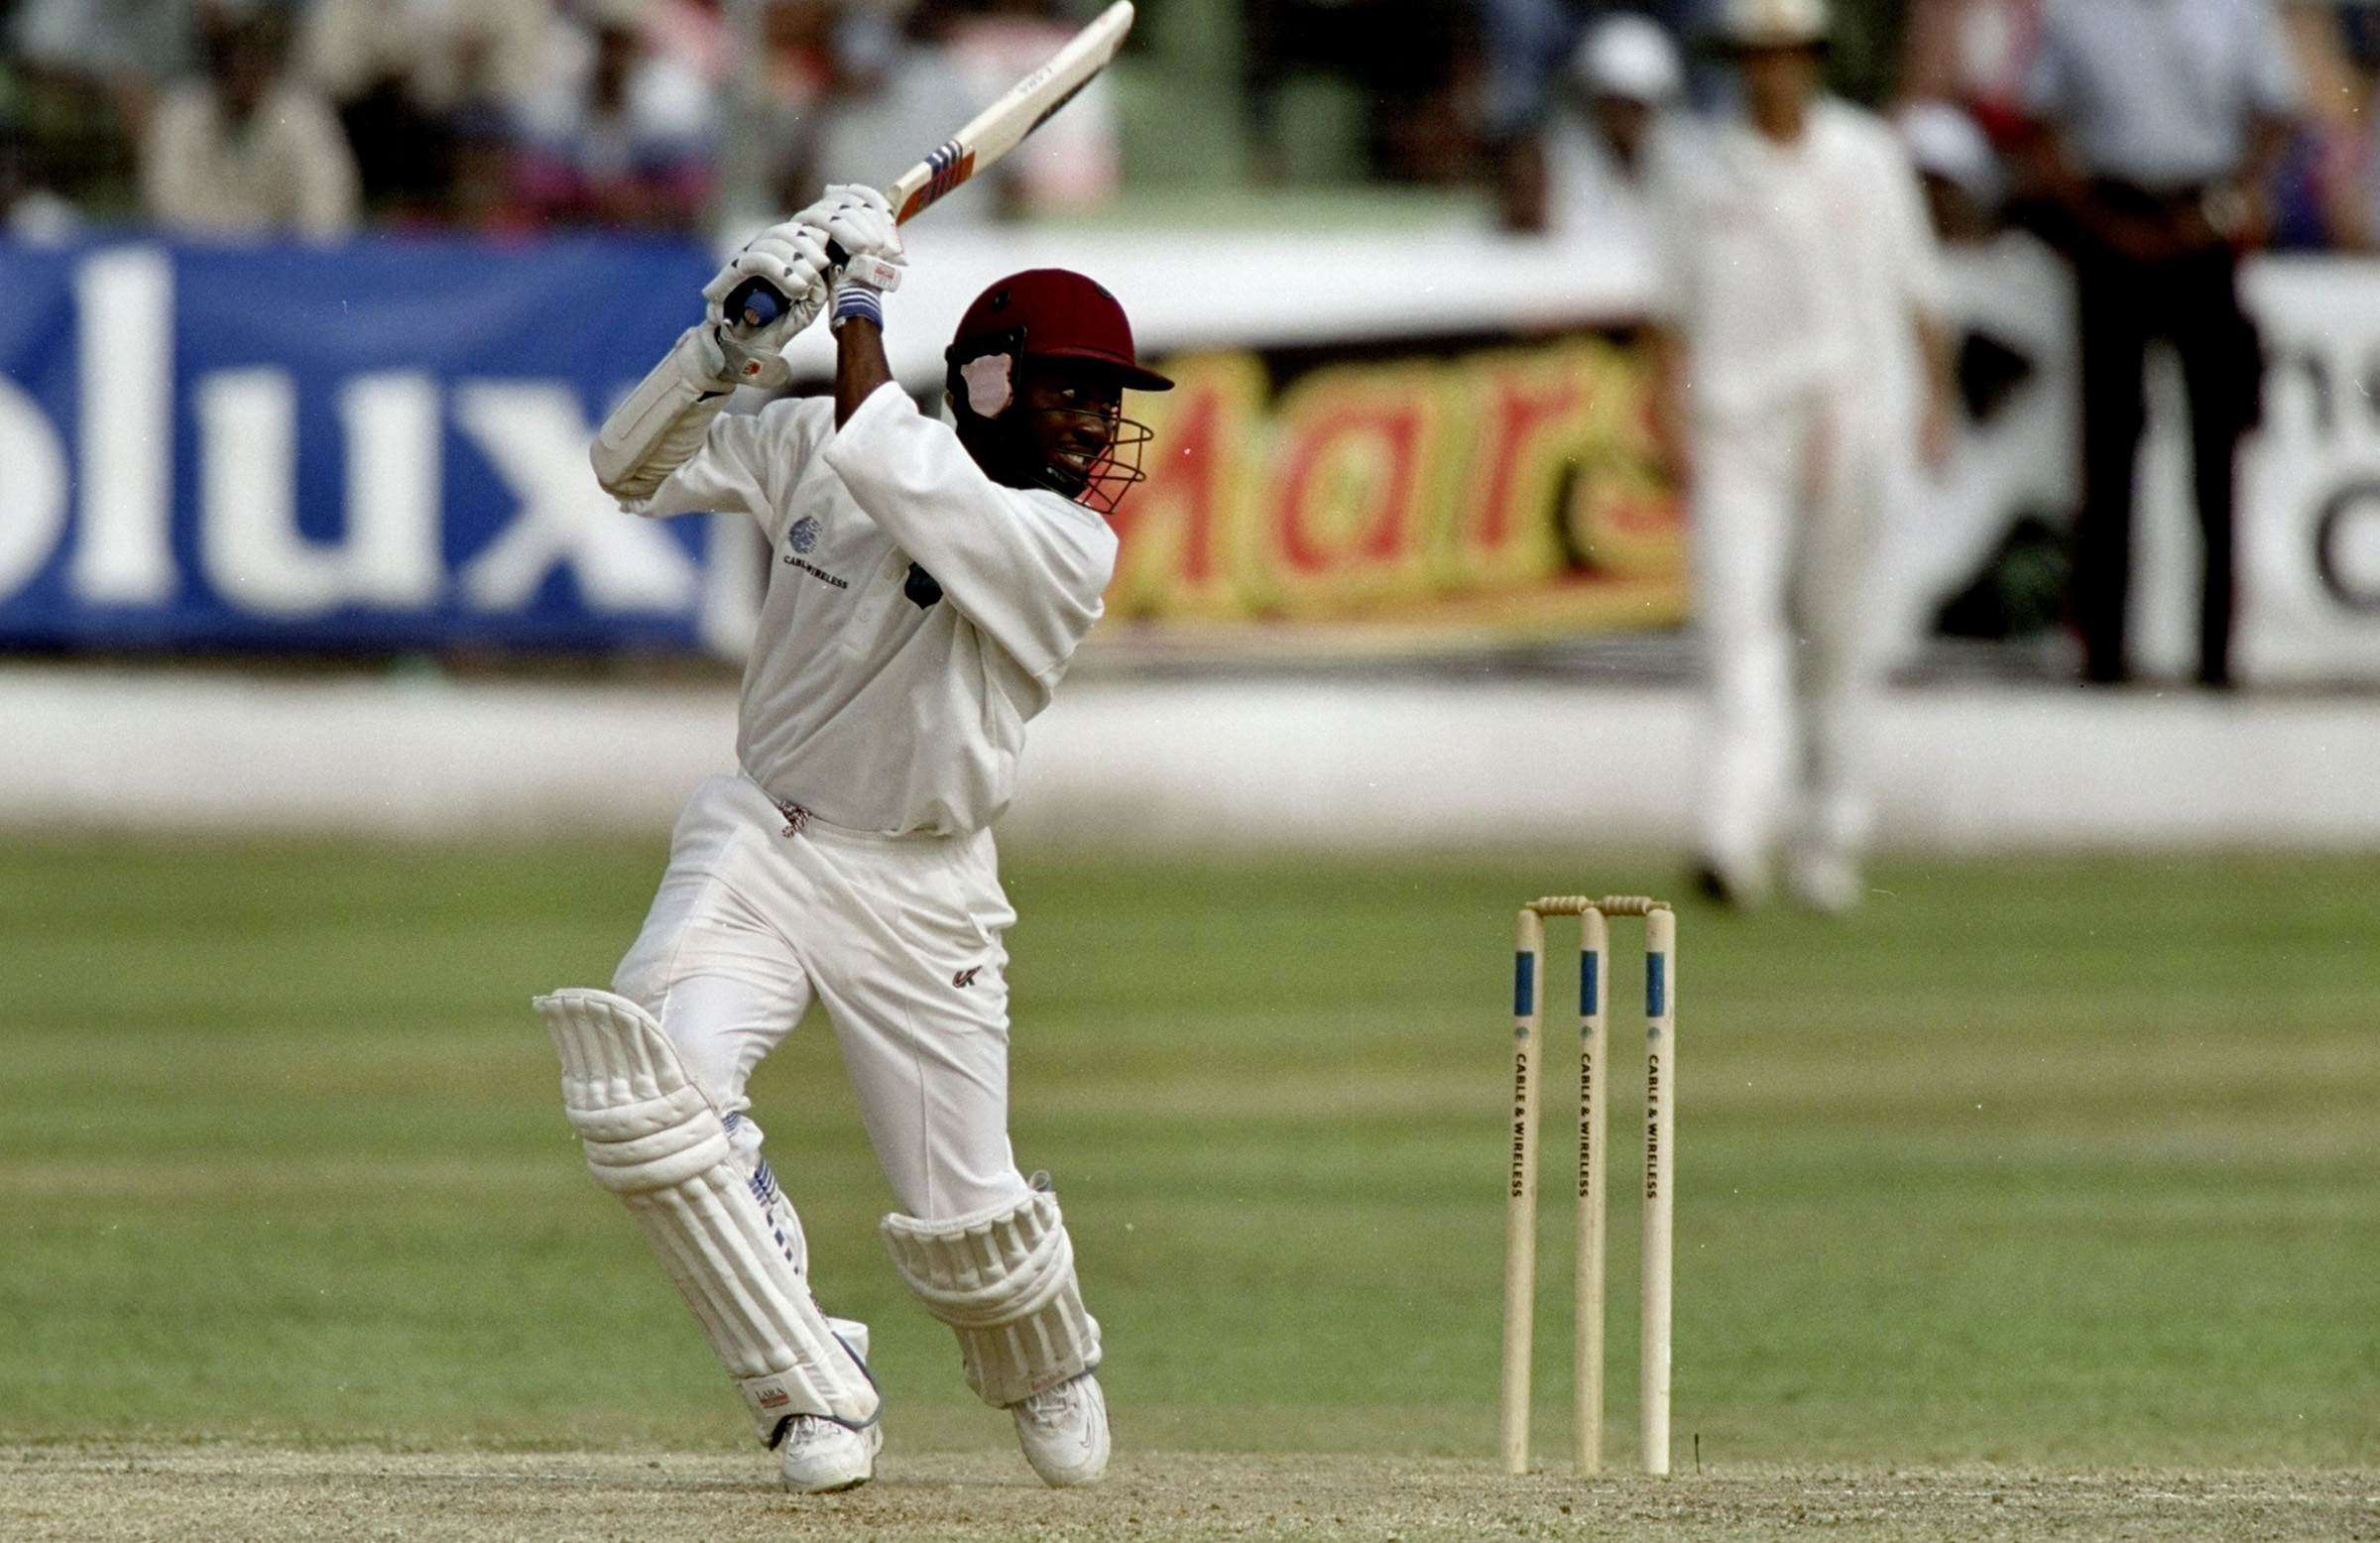 Lara hammered 19 fours at Kensington Oval // Getty